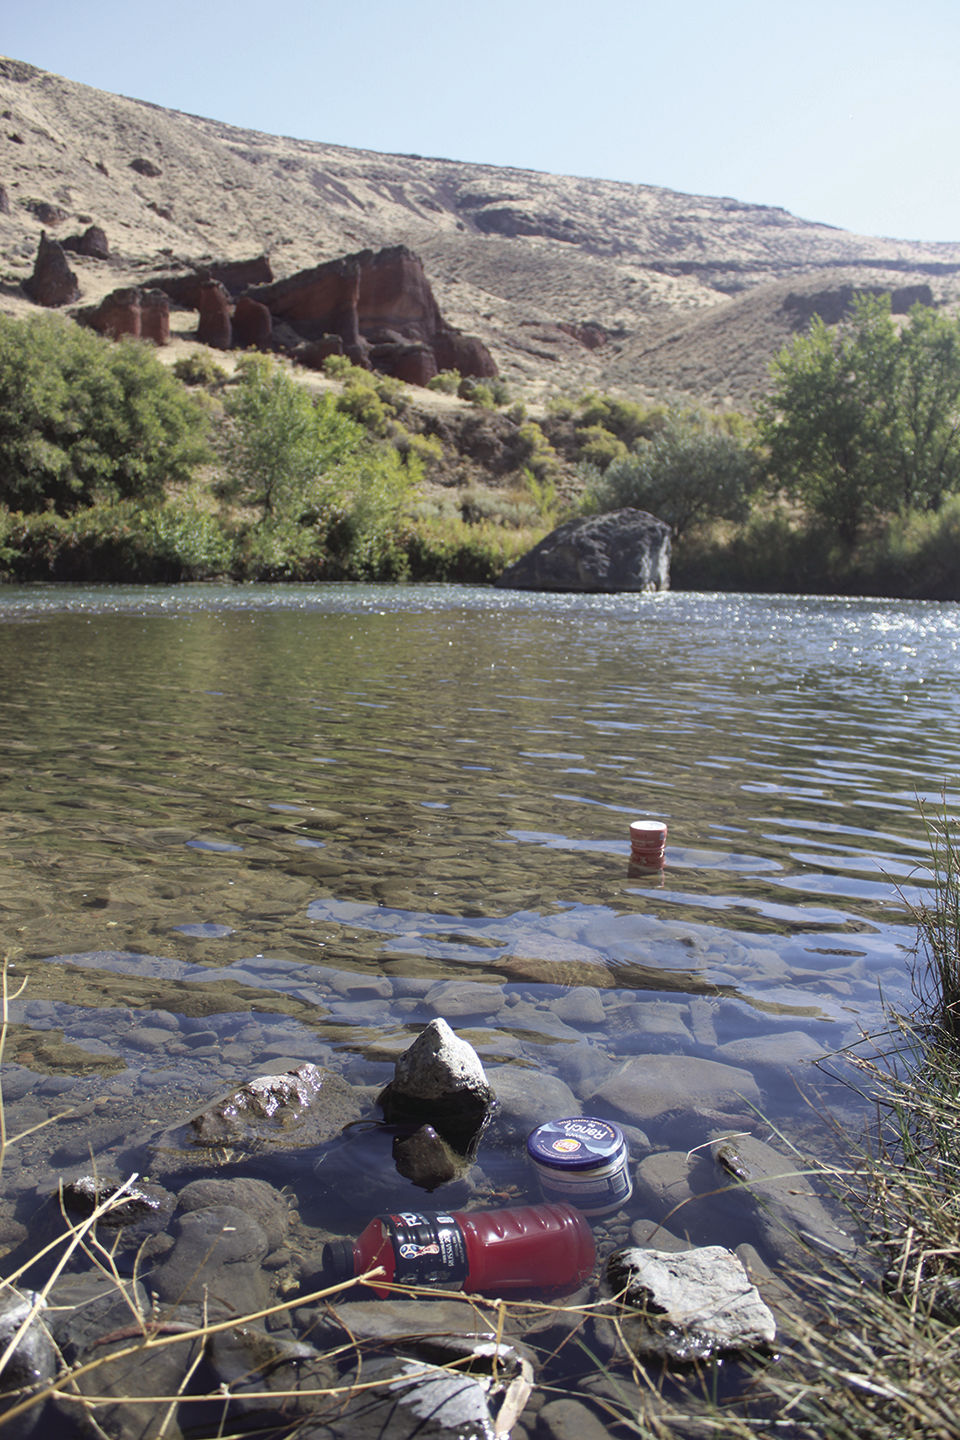 Plastics in the wild: 'Eventually the plastic that enters the Owyhee [River] will enter the ocean'